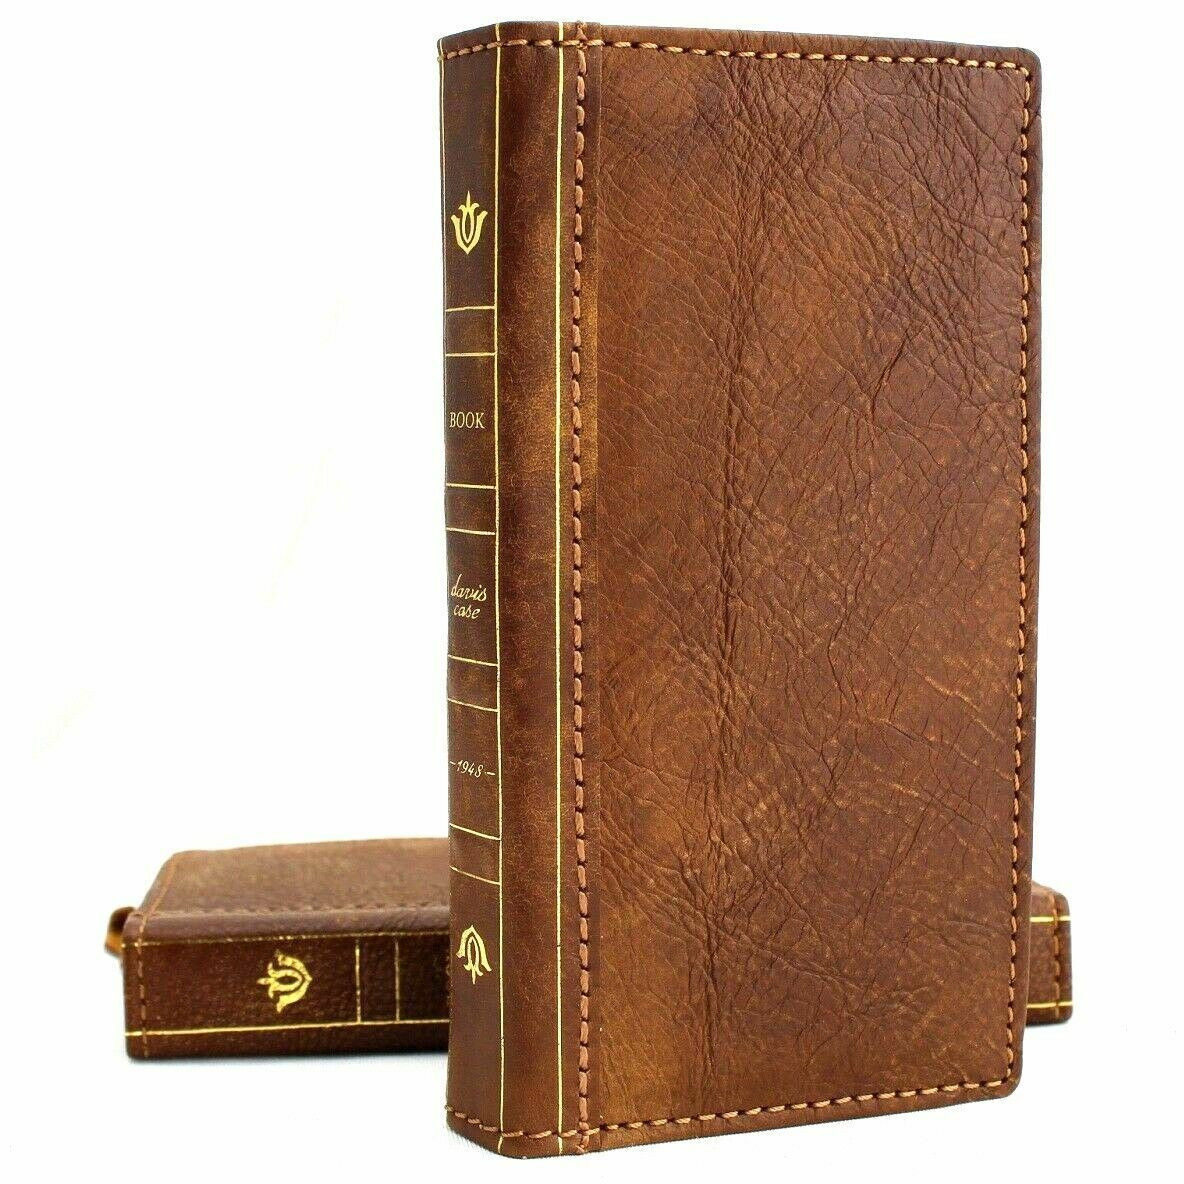 huge discount 75ee1 463f1 Genuine real leather Case for Samsung Galaxy S10 wireless charging holder  vintage book wallet handmade Tan daviscase s 10 luxury bible Jafo